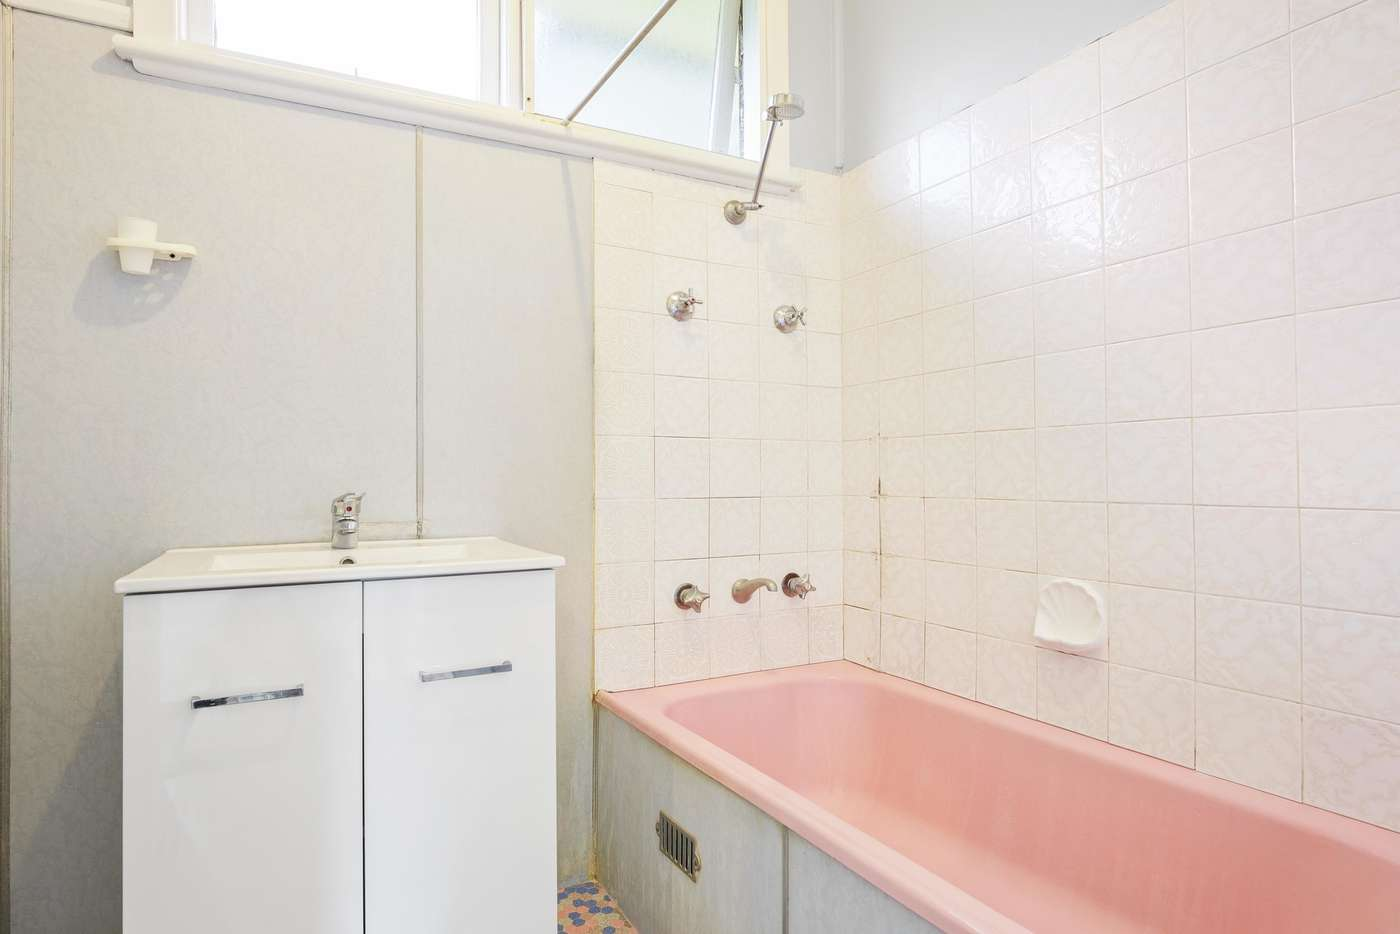 Seventh view of Homely house listing, 2 Ridley Street, Charlestown NSW 2290